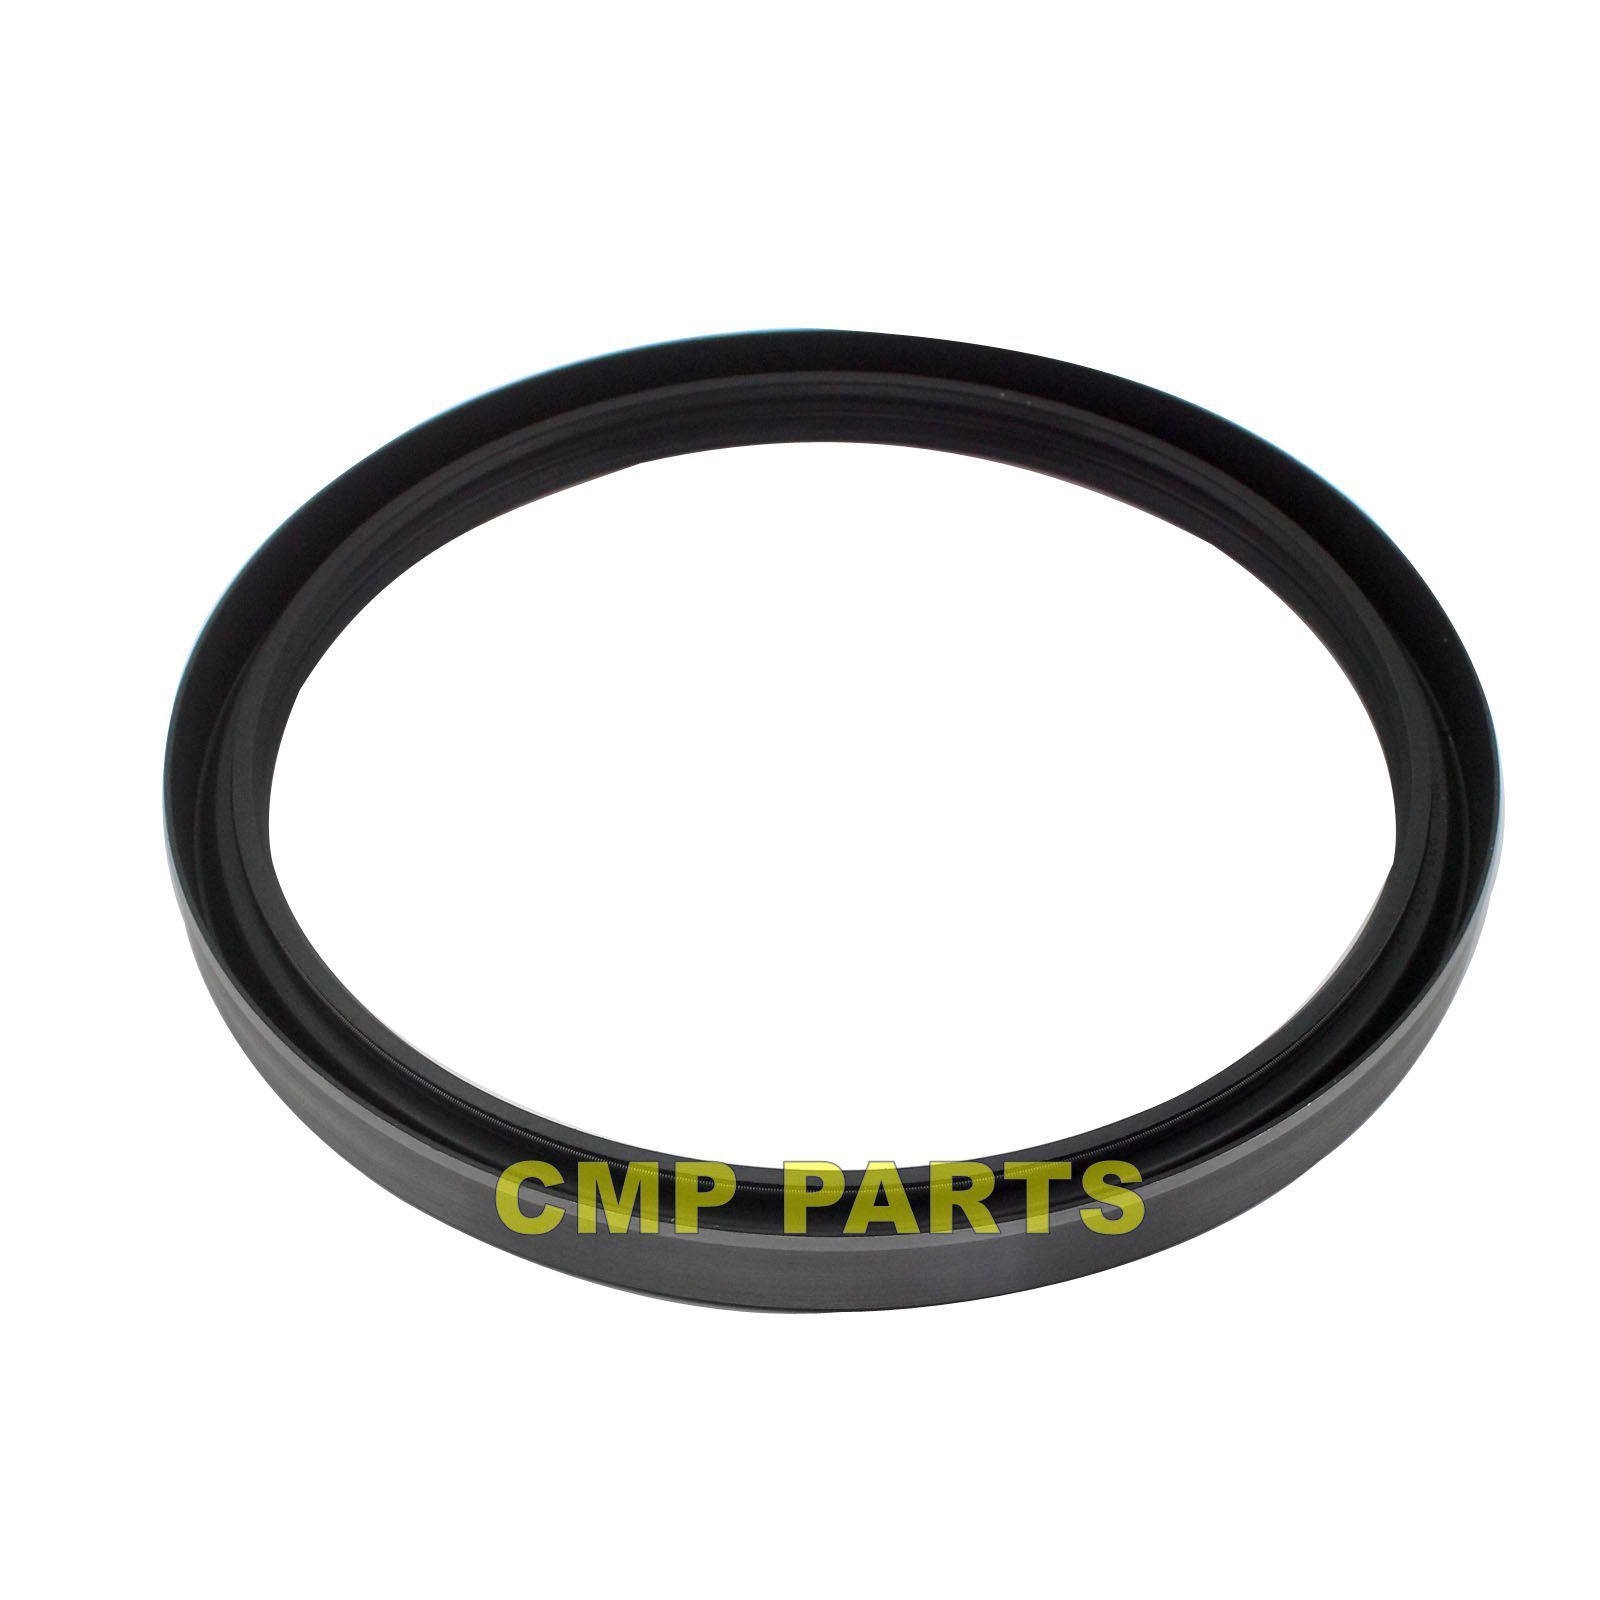 4272674(pump ring) For Hitachi Excavator EX100-2 EX100-3 EX120-2 EX120-3 EX200-2 EX200-3 EX220-2 цены